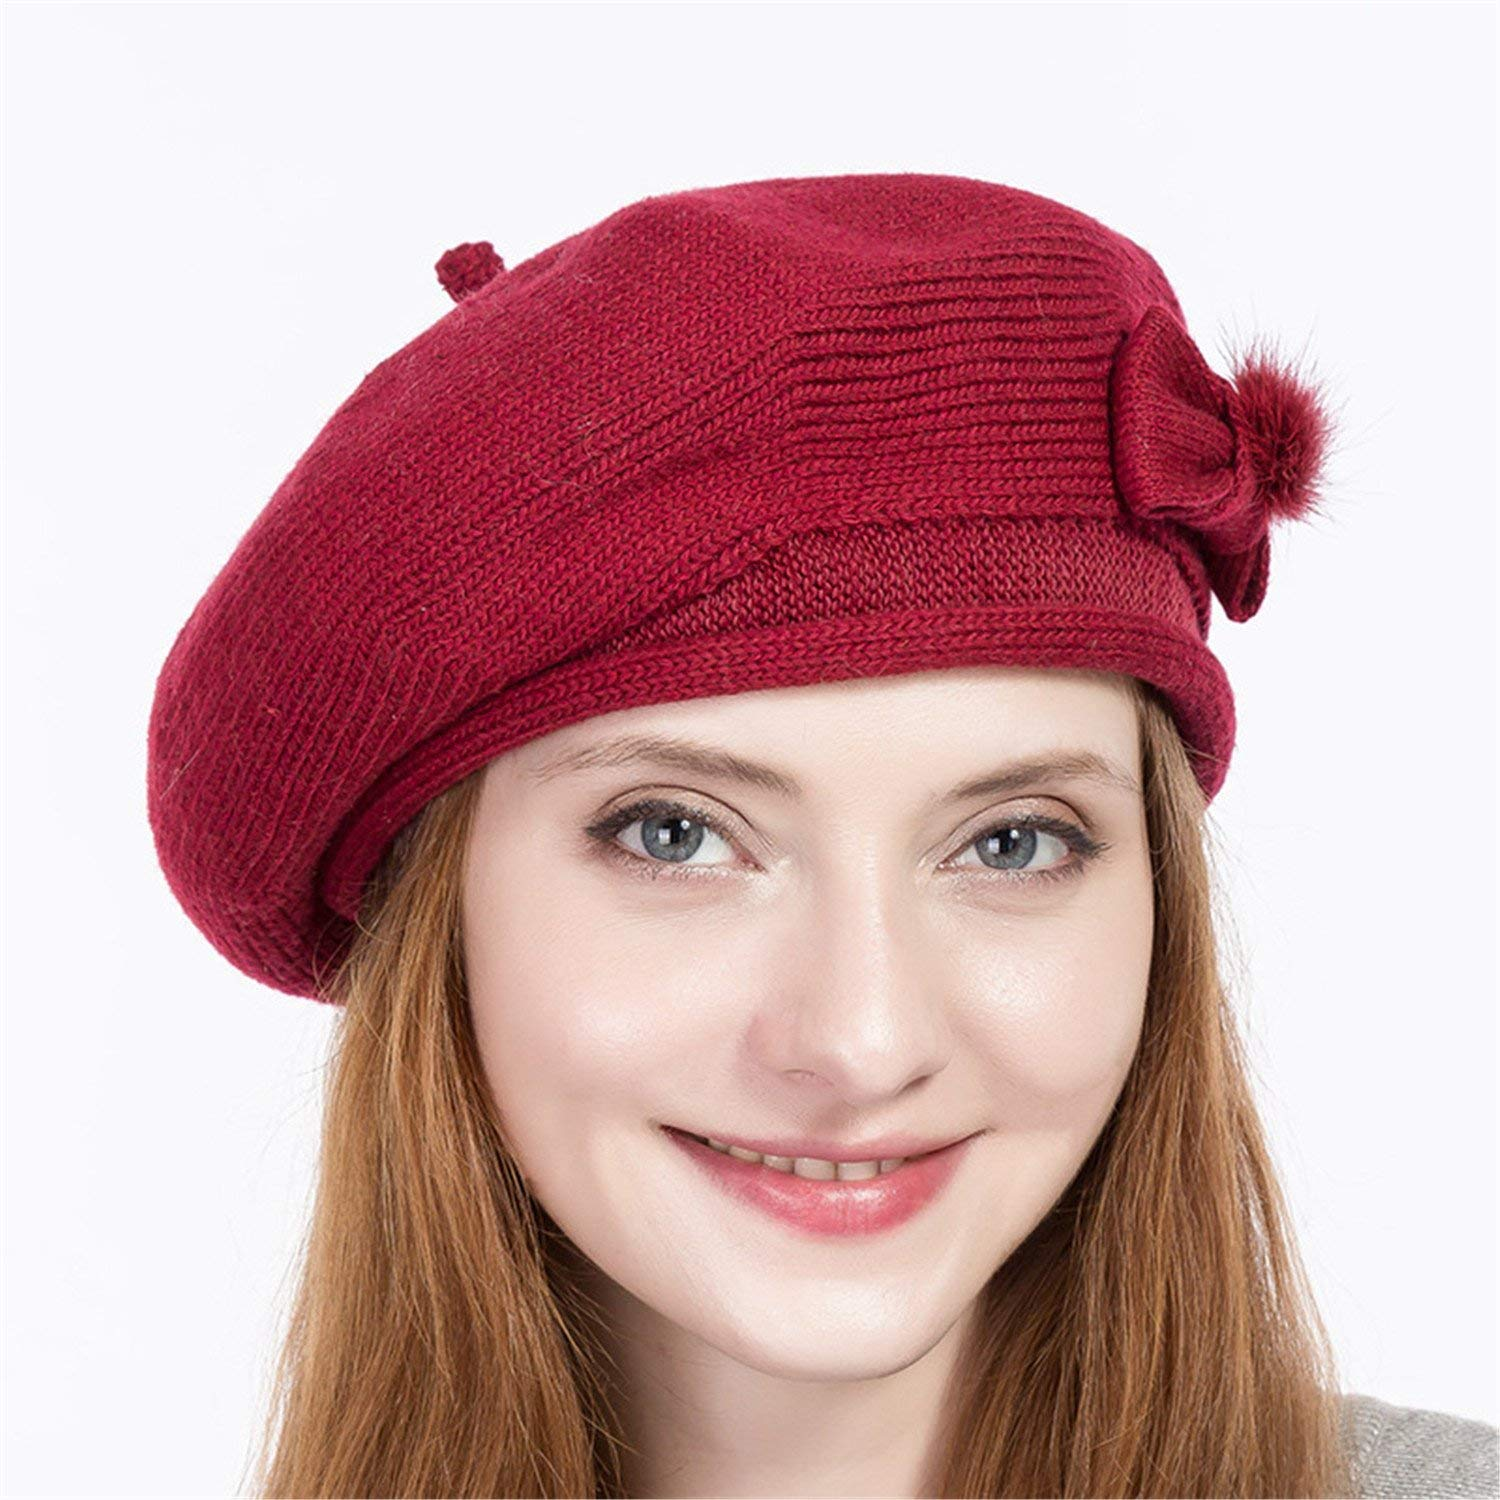 80e71dd8aa7a7 Get Quotations · Miki Da New Wool hat women s winter warm woolen vintage french  beanie hat cap gift sweet